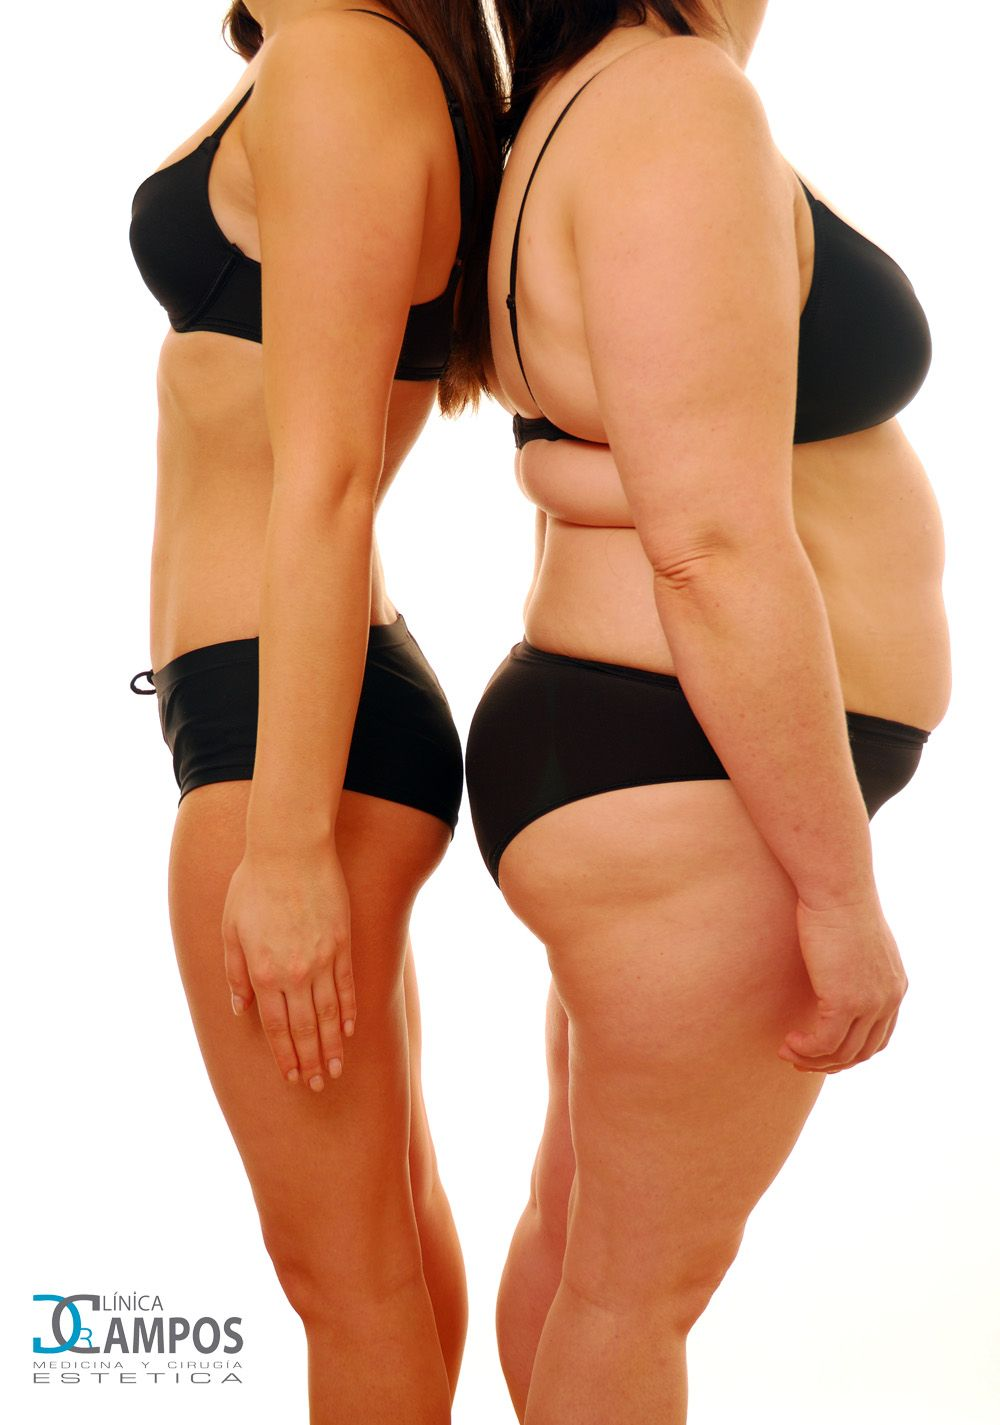 OZONE THERAPY TO LOSE WEIGHT AND SHOW OFF A NEW FIGURE